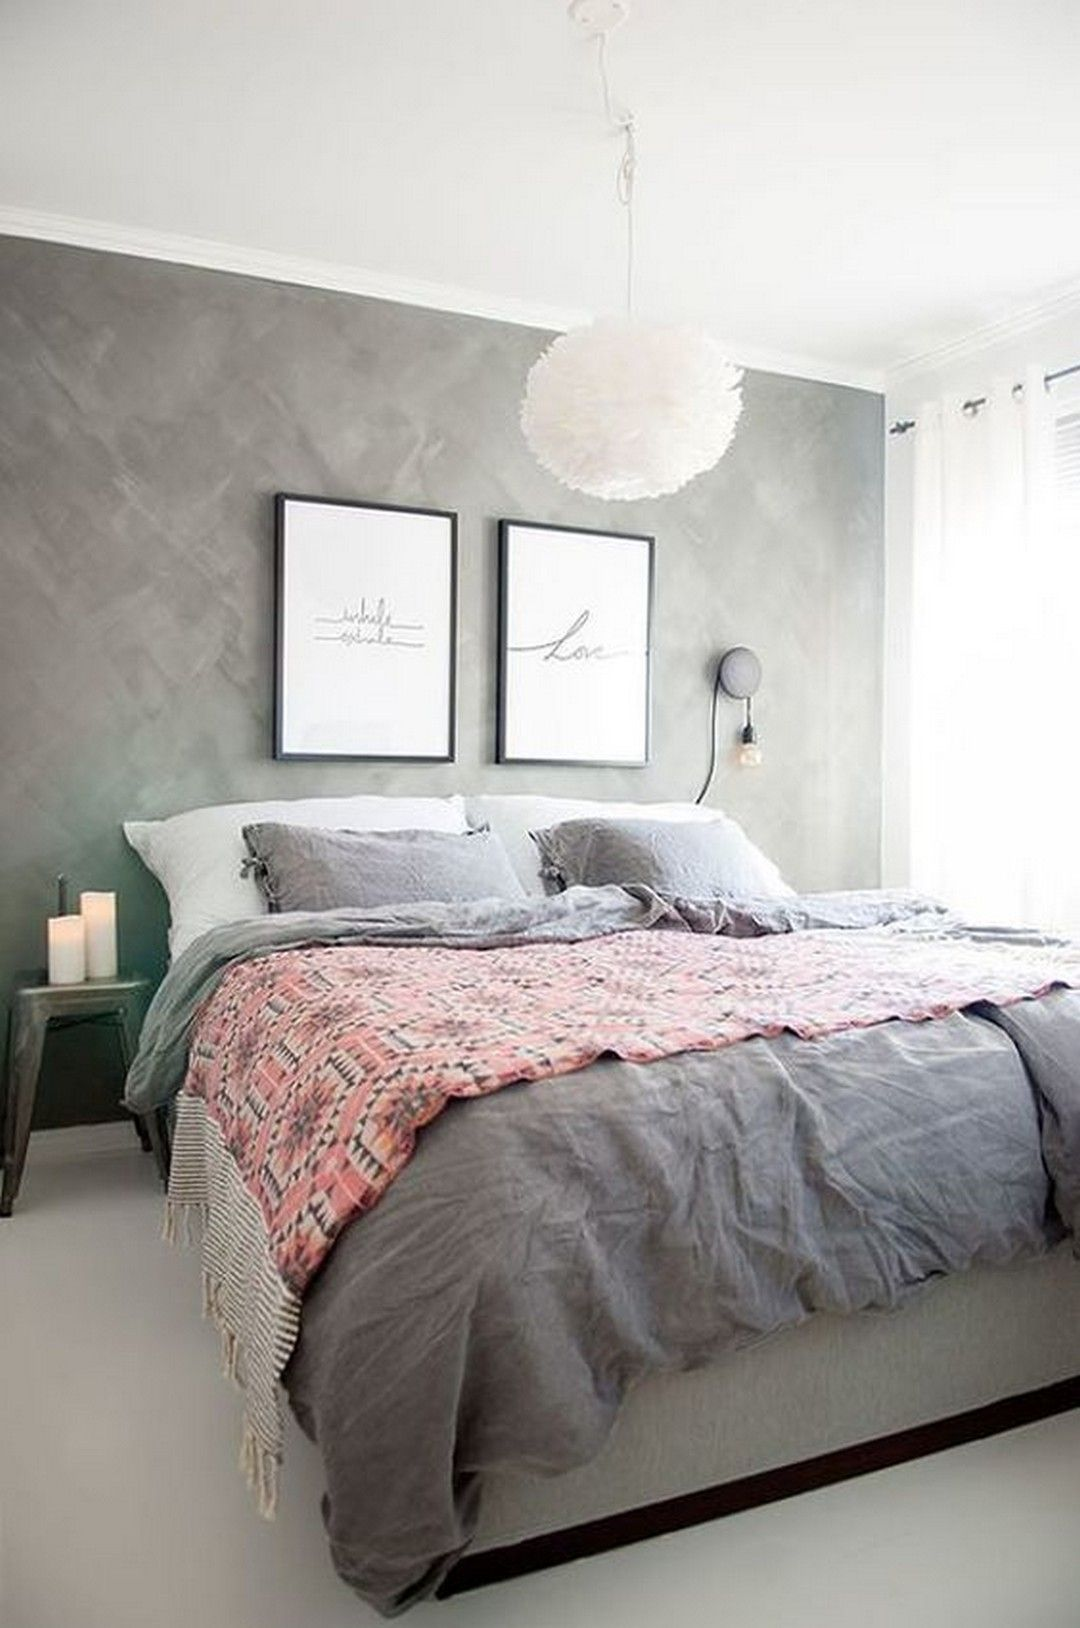 Simple Way Of Renovating Young Lady Bedroom Design With These Great Ideas Goodnewsarchitecture Home Bedroom Bedroom Interior Woman Bedroom